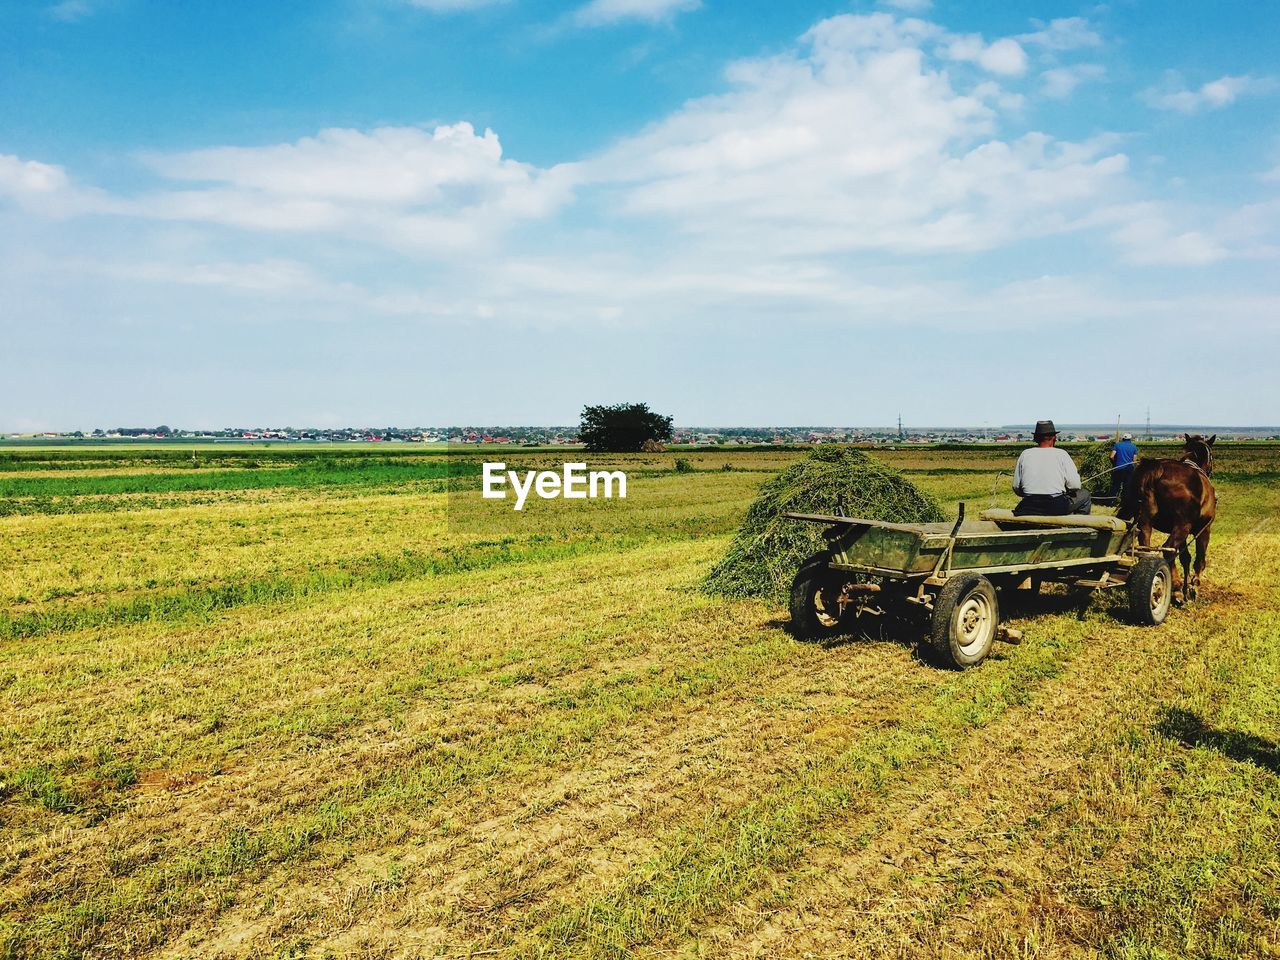 field, land, landscape, agriculture, sky, environment, plant, rural scene, mode of transportation, transportation, agricultural machinery, grass, land vehicle, farm, day, nature, beauty in nature, agricultural equipment, growth, cloud - sky, farmer, outdoors